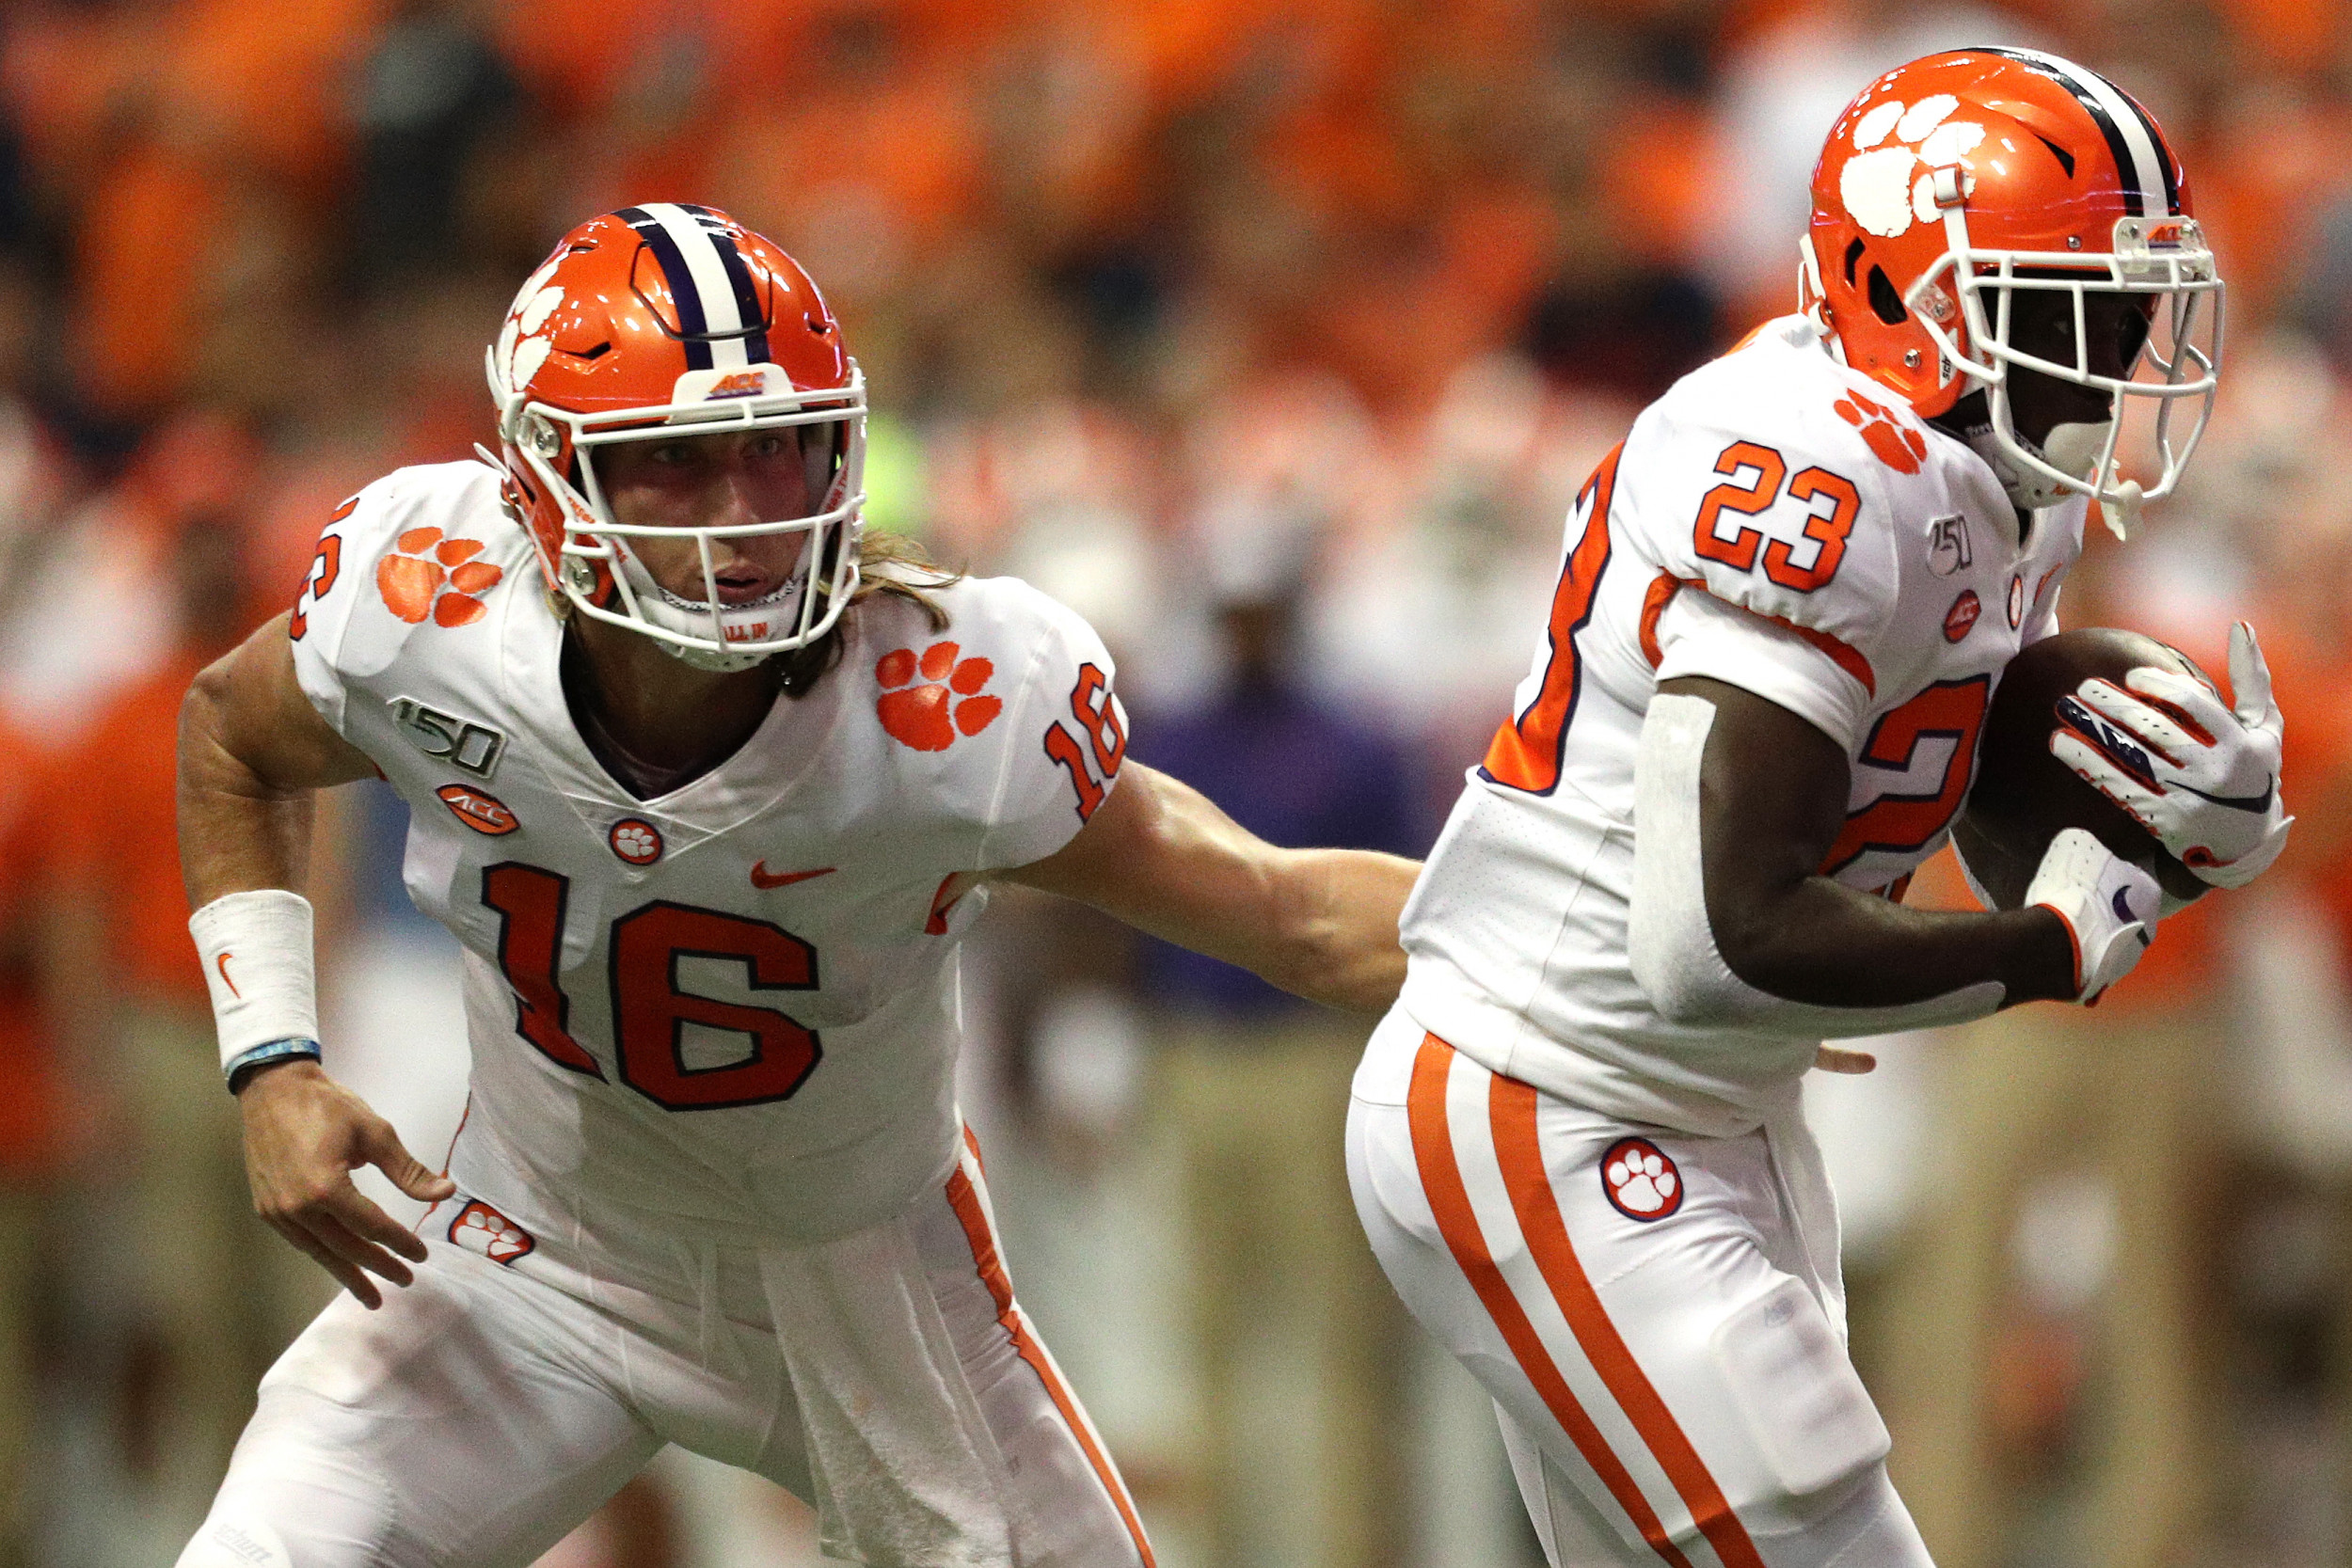 College Football 2019 Where To Watch Charlotte Vs Clemson Tv Channel Live Stream And Odds